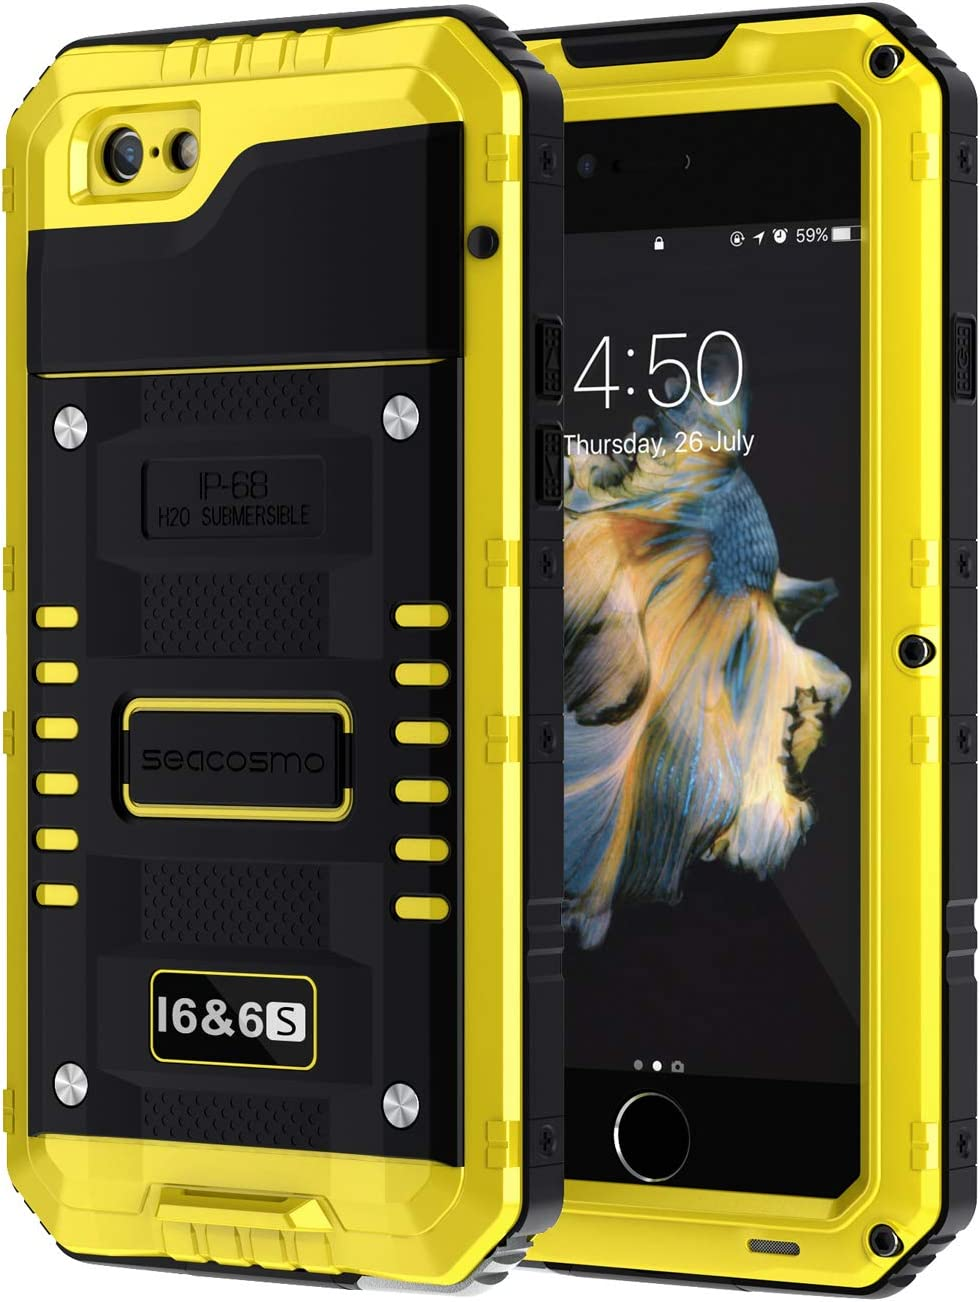 seacosmo iPhone 6/6S Case, Military Grade IP68 Waterproof Dustproof Shockproof Full Body Sealed Underwater Case with Built-in Screen Protector Heavy Duty Metal Rugged Case for iPhone 6/6S, Yellow